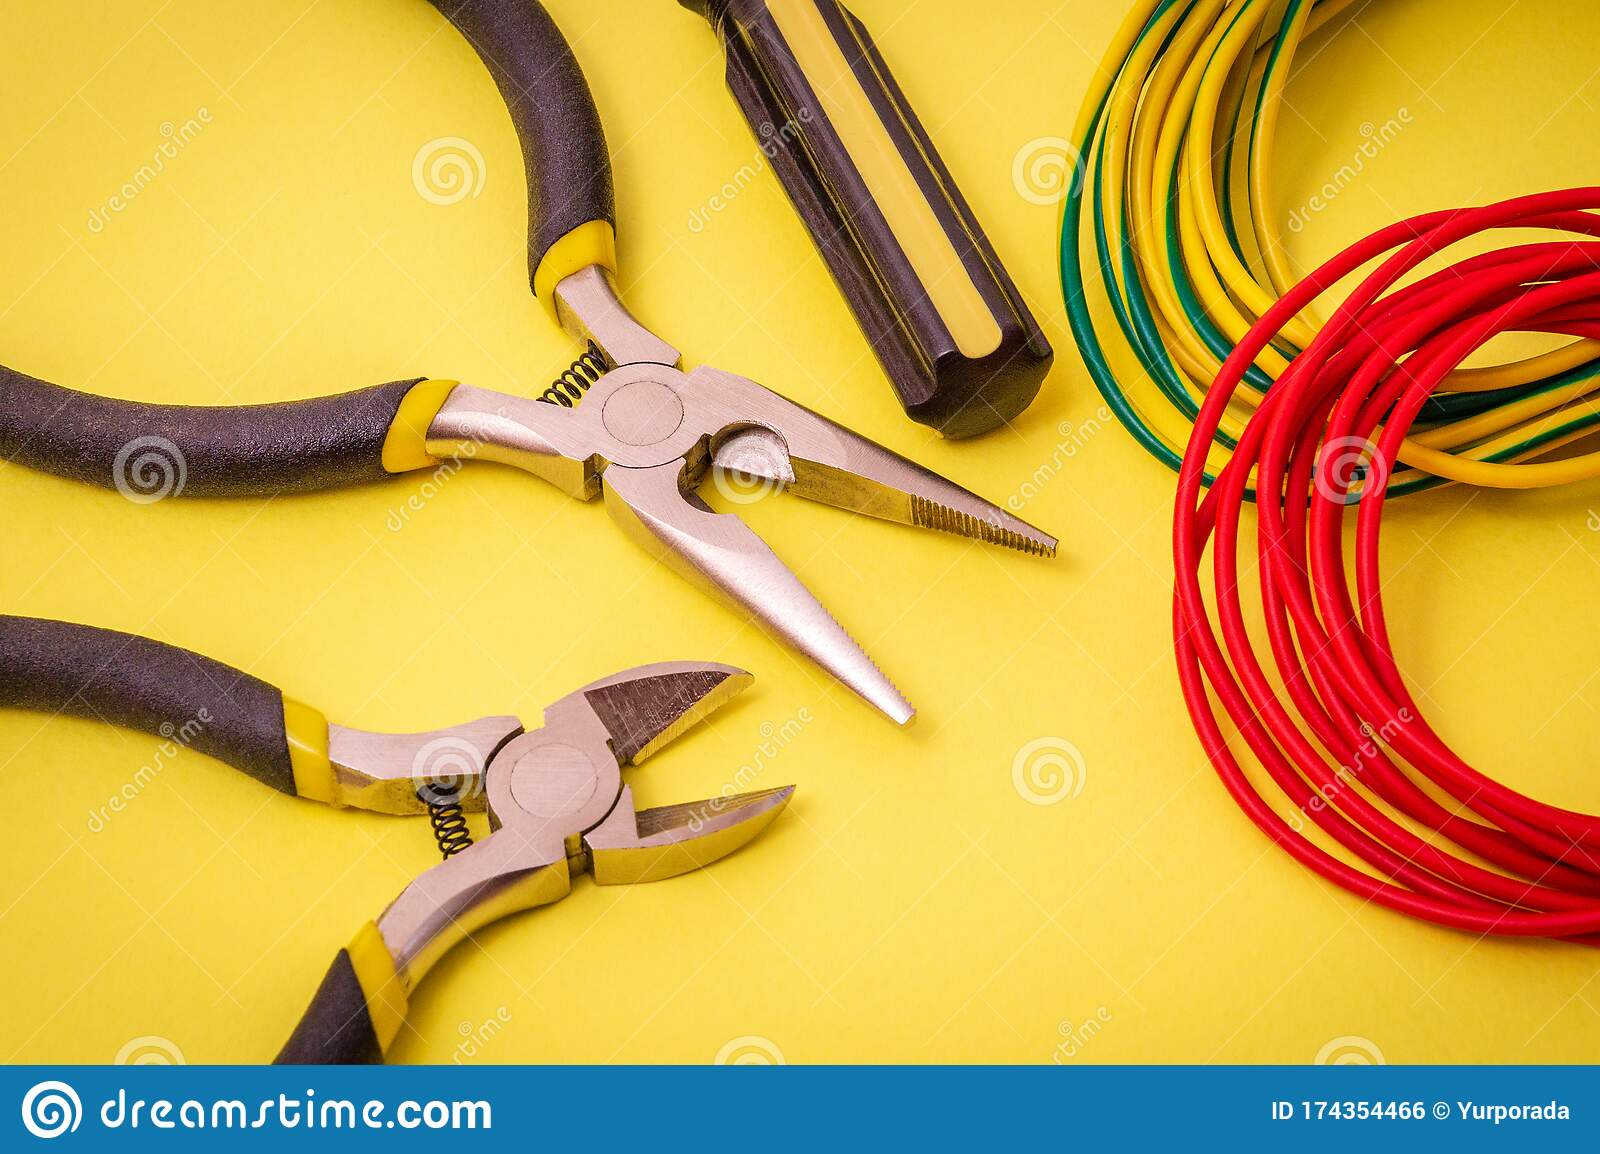 Electrician Tools And Wires On Yellow Background For Repairing Energized Systems Or Communications Stock Photo Image Of Yellow Repair 174354466